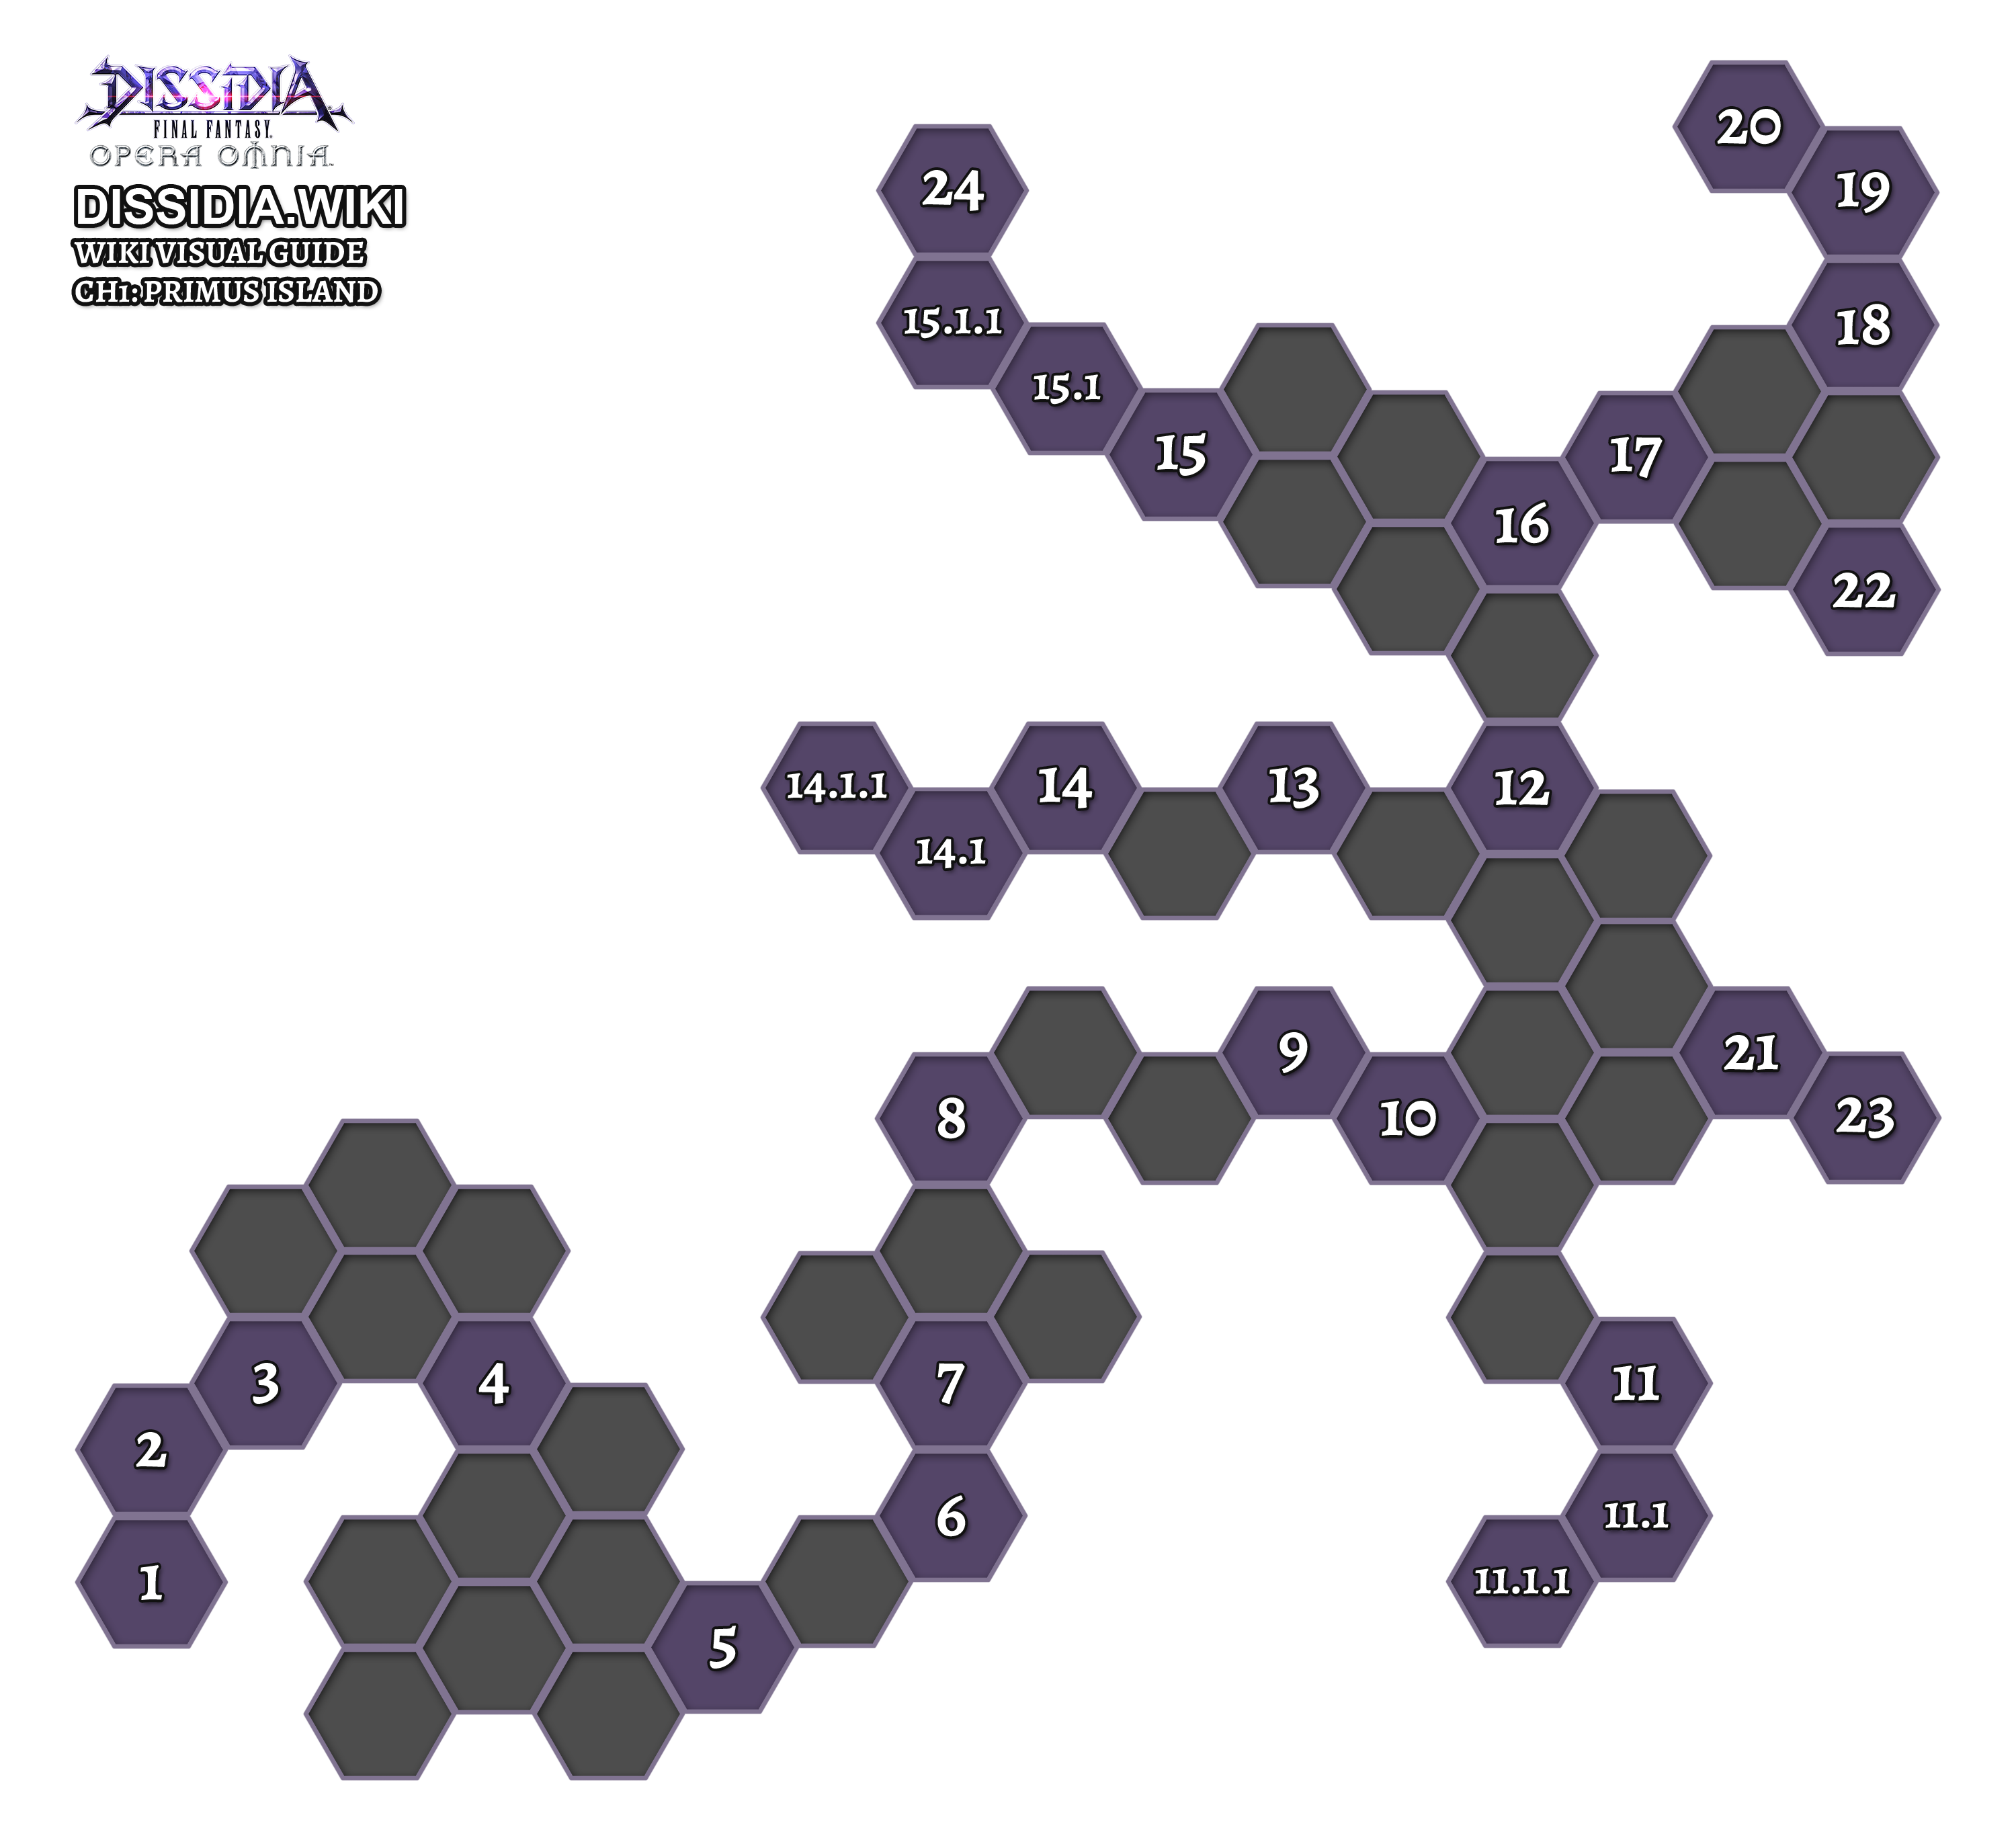 Chapter 1 map